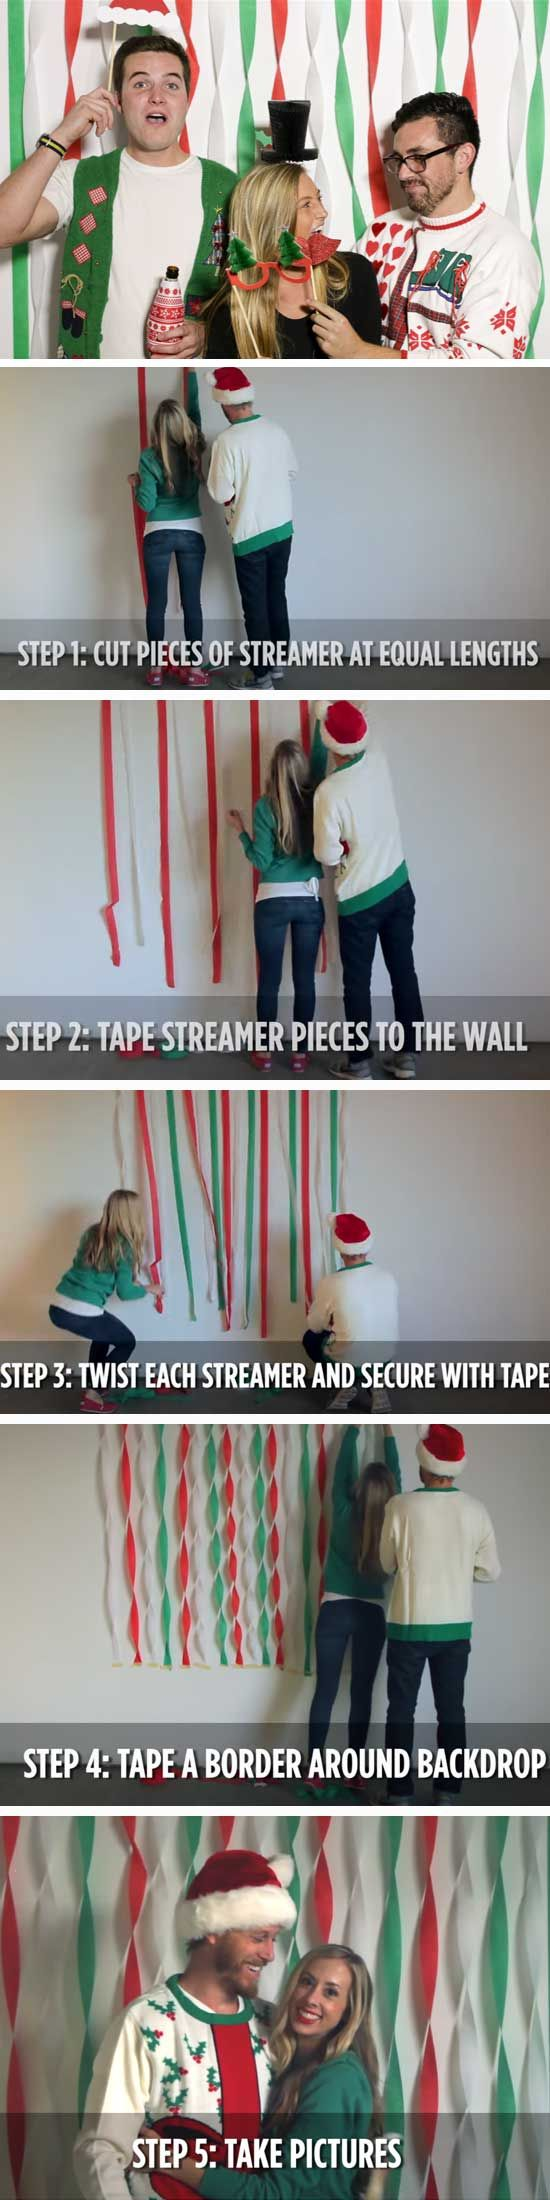 Christmas Party Games Ideas For Work Part - 42: 25+ DIY Christmas Party Ideas For Adults